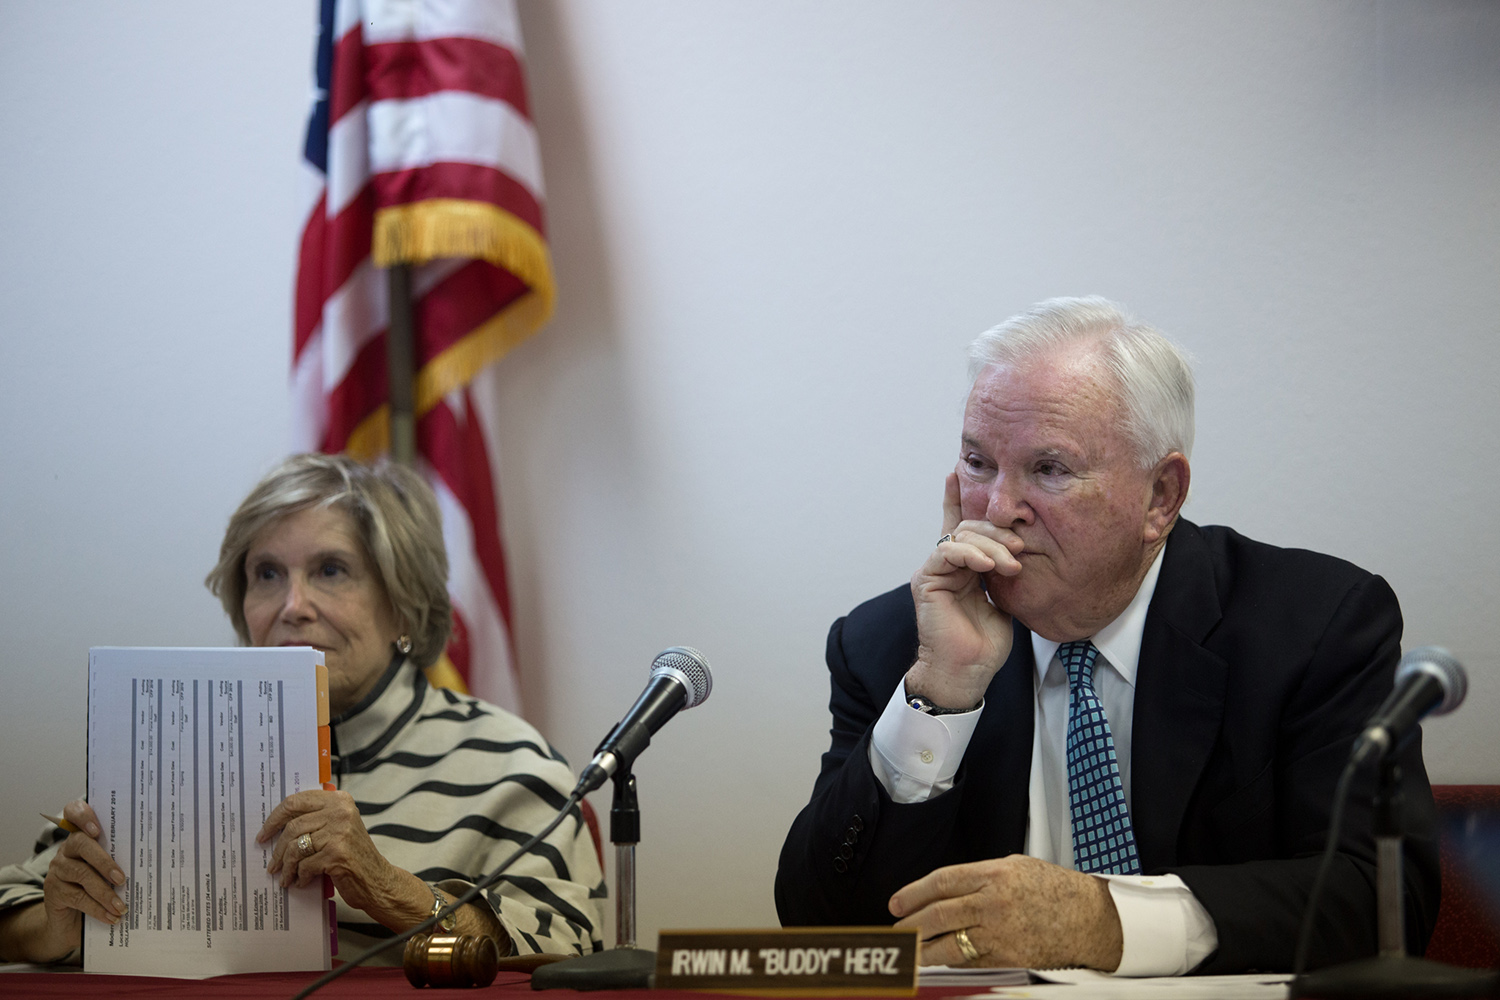 Galveston Housing Authority board members Ann Masel and Buddy Herz have blamed the state and federal governments for delays in rebuilding.